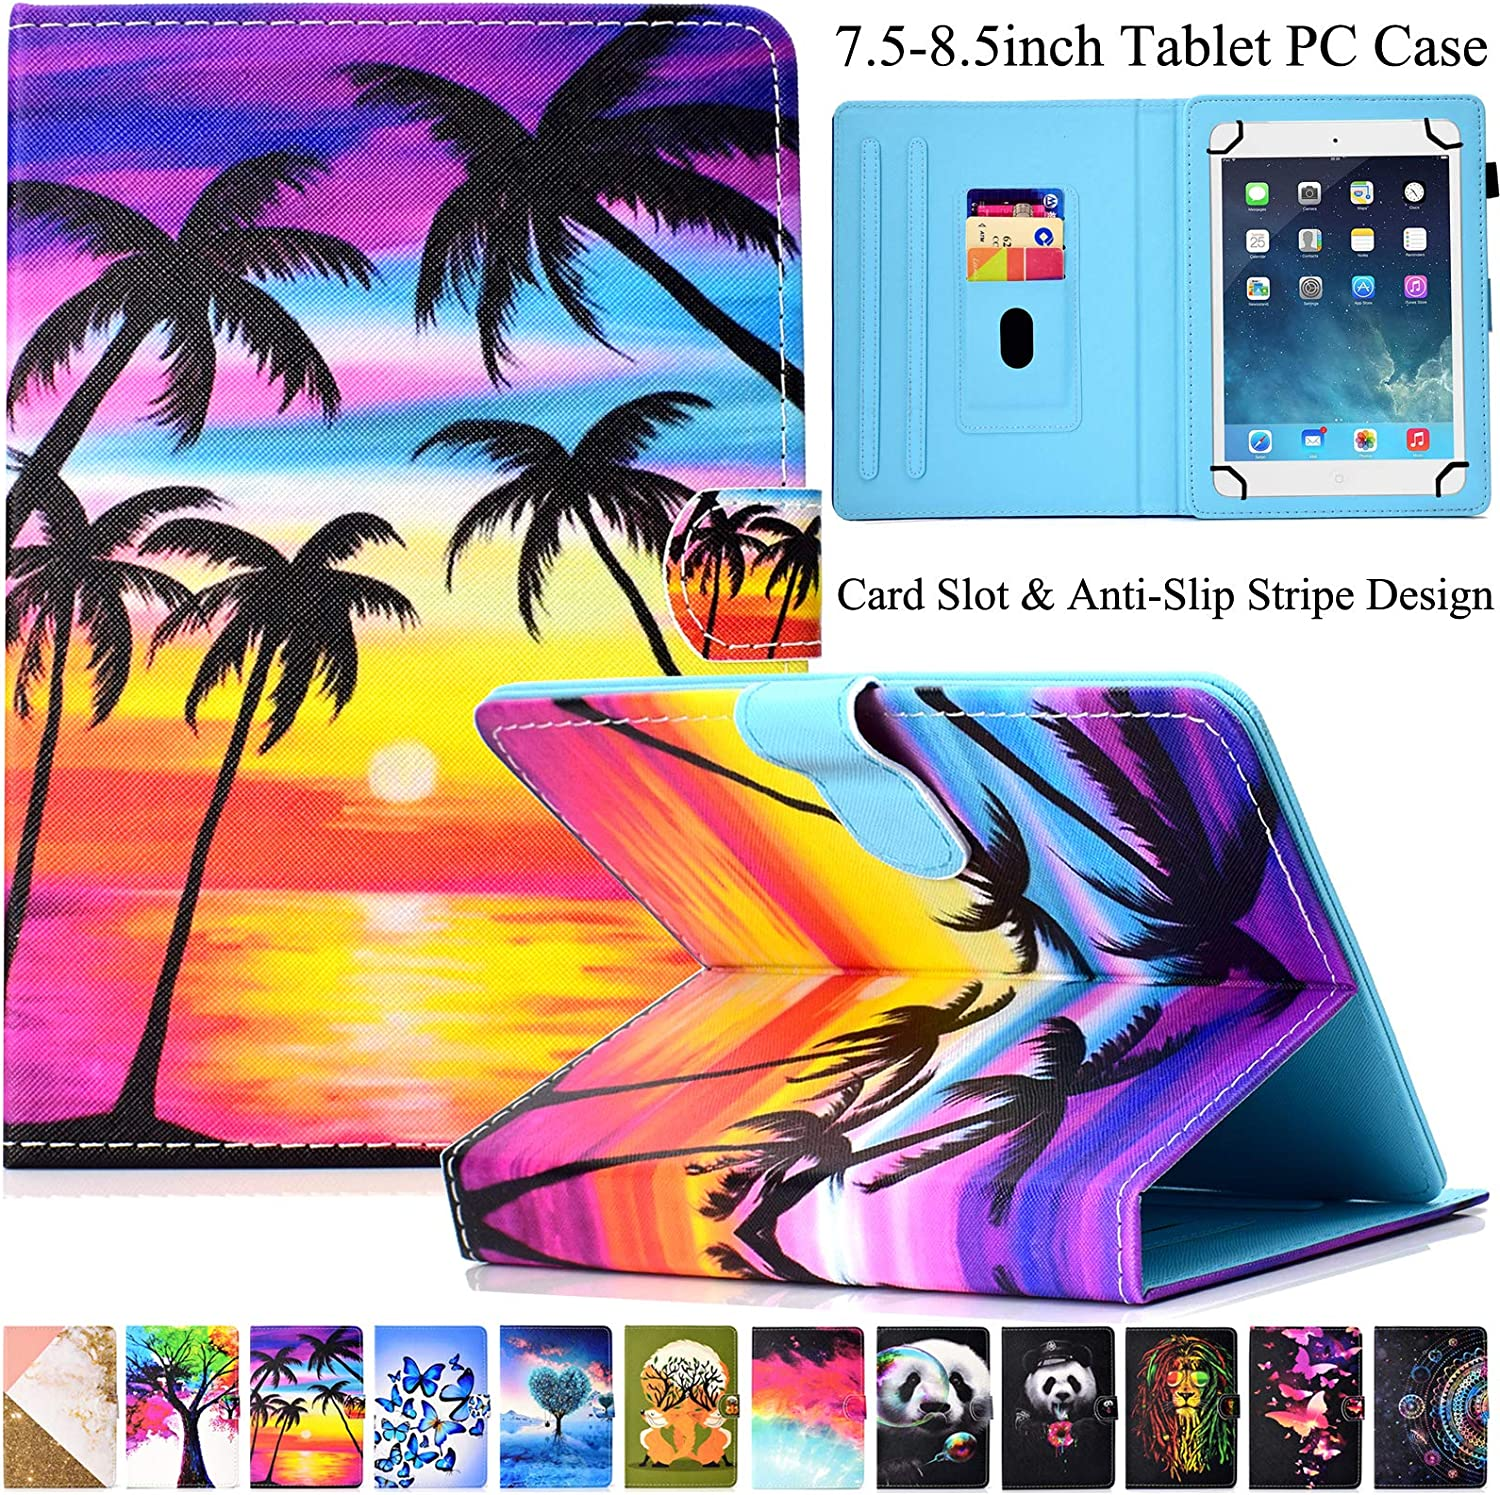 Universal 7.5-8.5 inch Tablet Case, Artyond Multi-Angle Stand Case with Cards Slots Magnetic Buckle Cover for iPad Mini,Kindle,Android,Galaxy Tab & Other 7.5-8.5 inch Tablet (Coconut Tree)